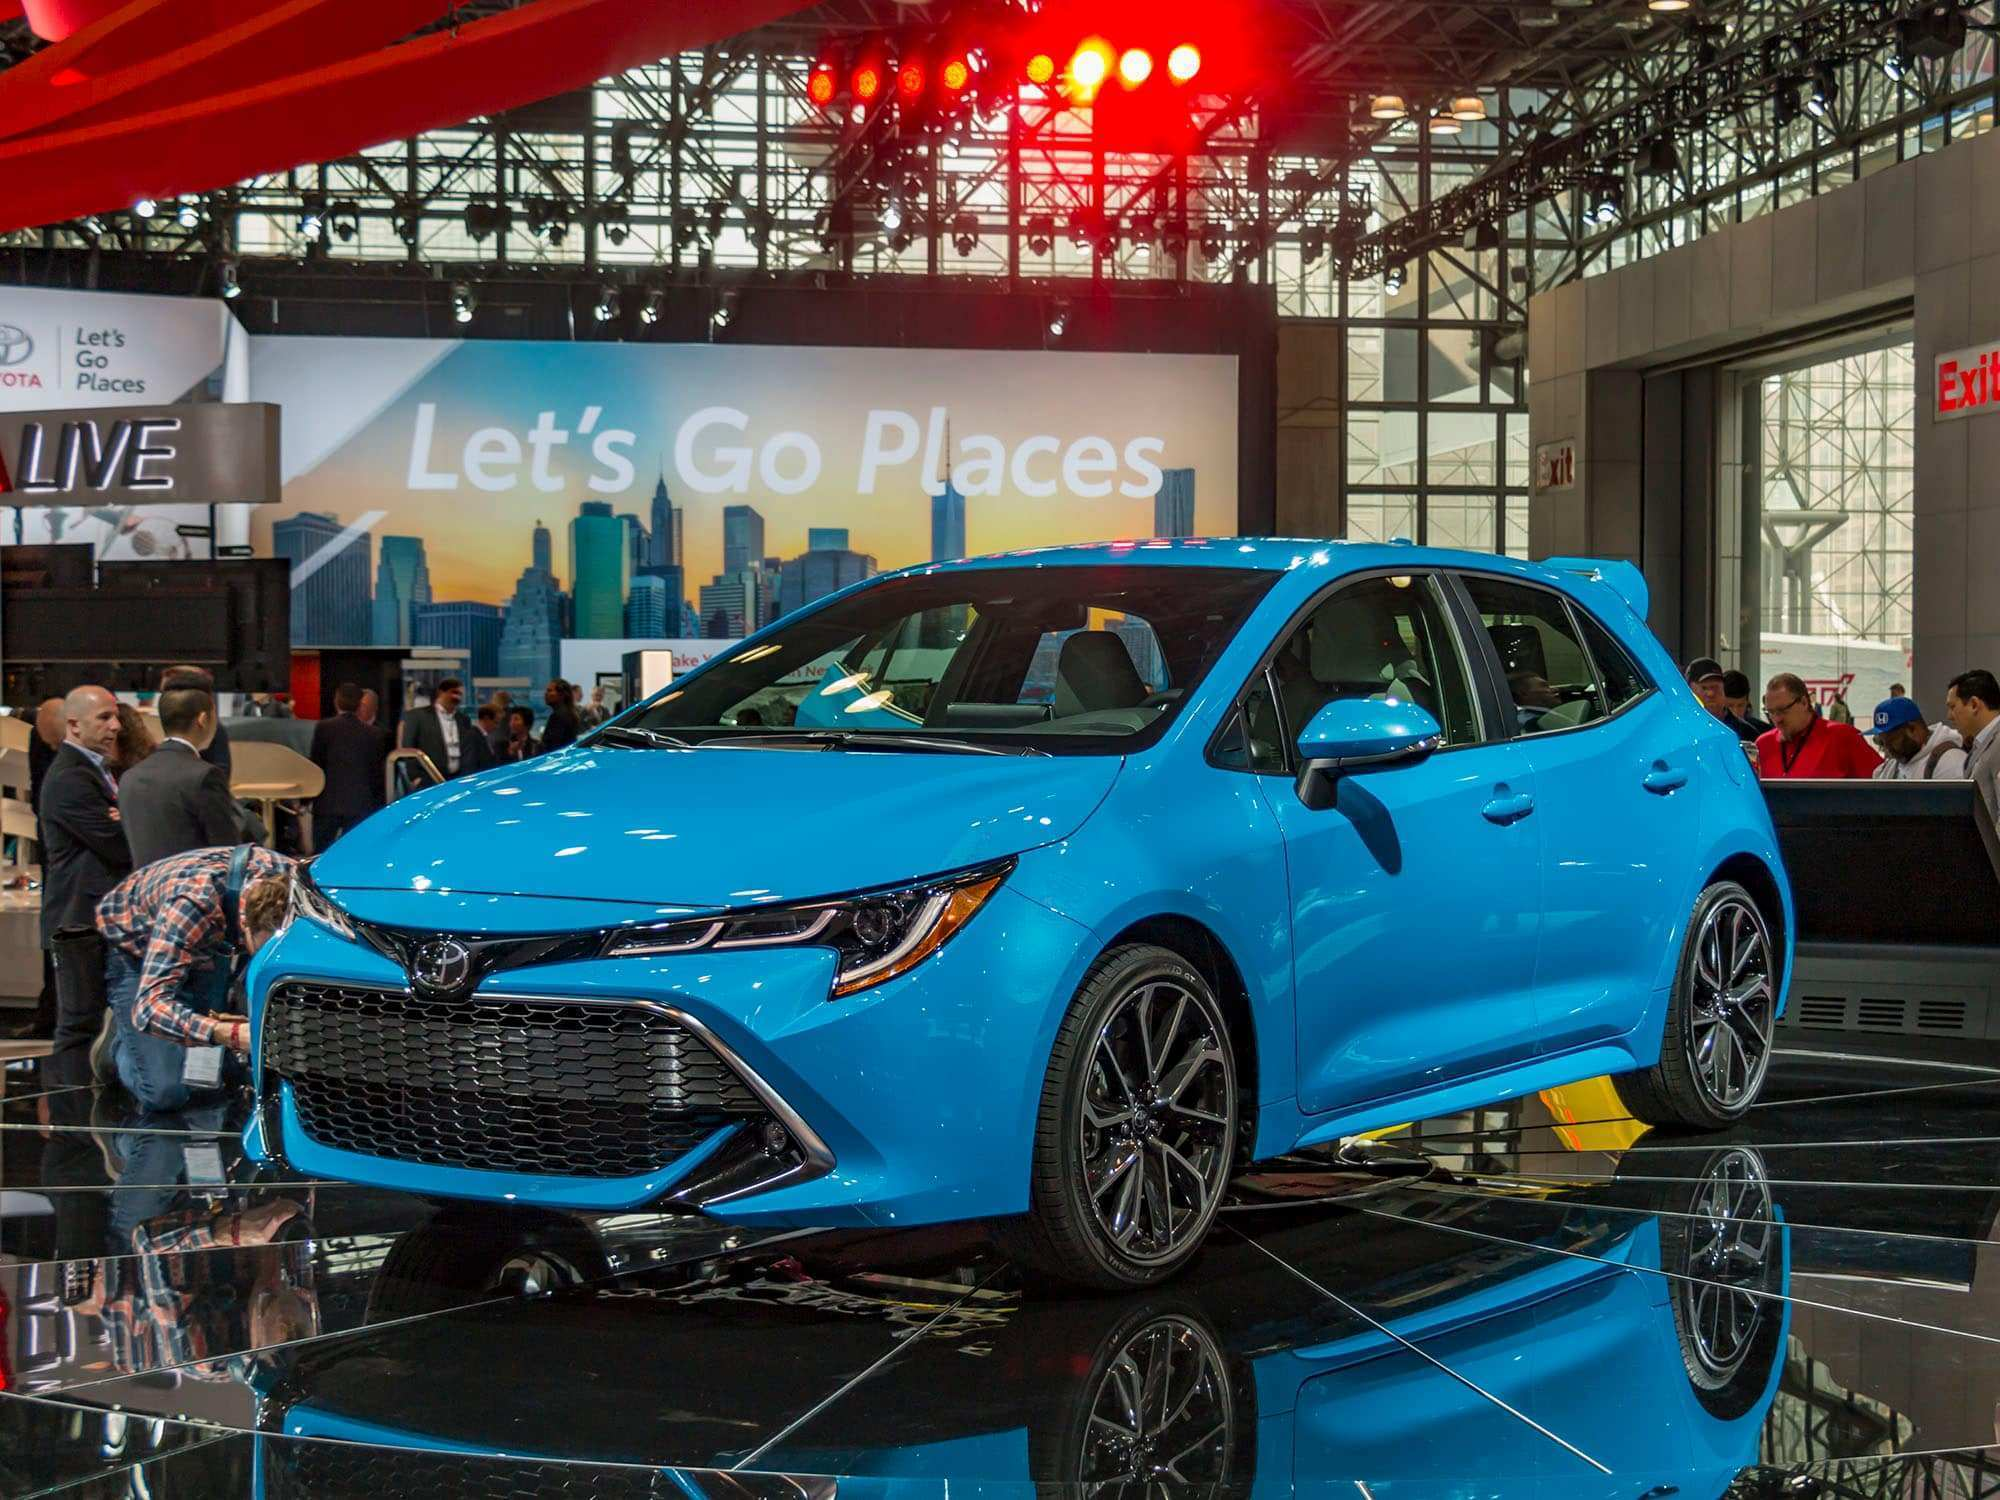 91 New The Price Of 2019 Toyota Corolla Hatchback Picture Spesification by The Price Of 2019 Toyota Corolla Hatchback Picture